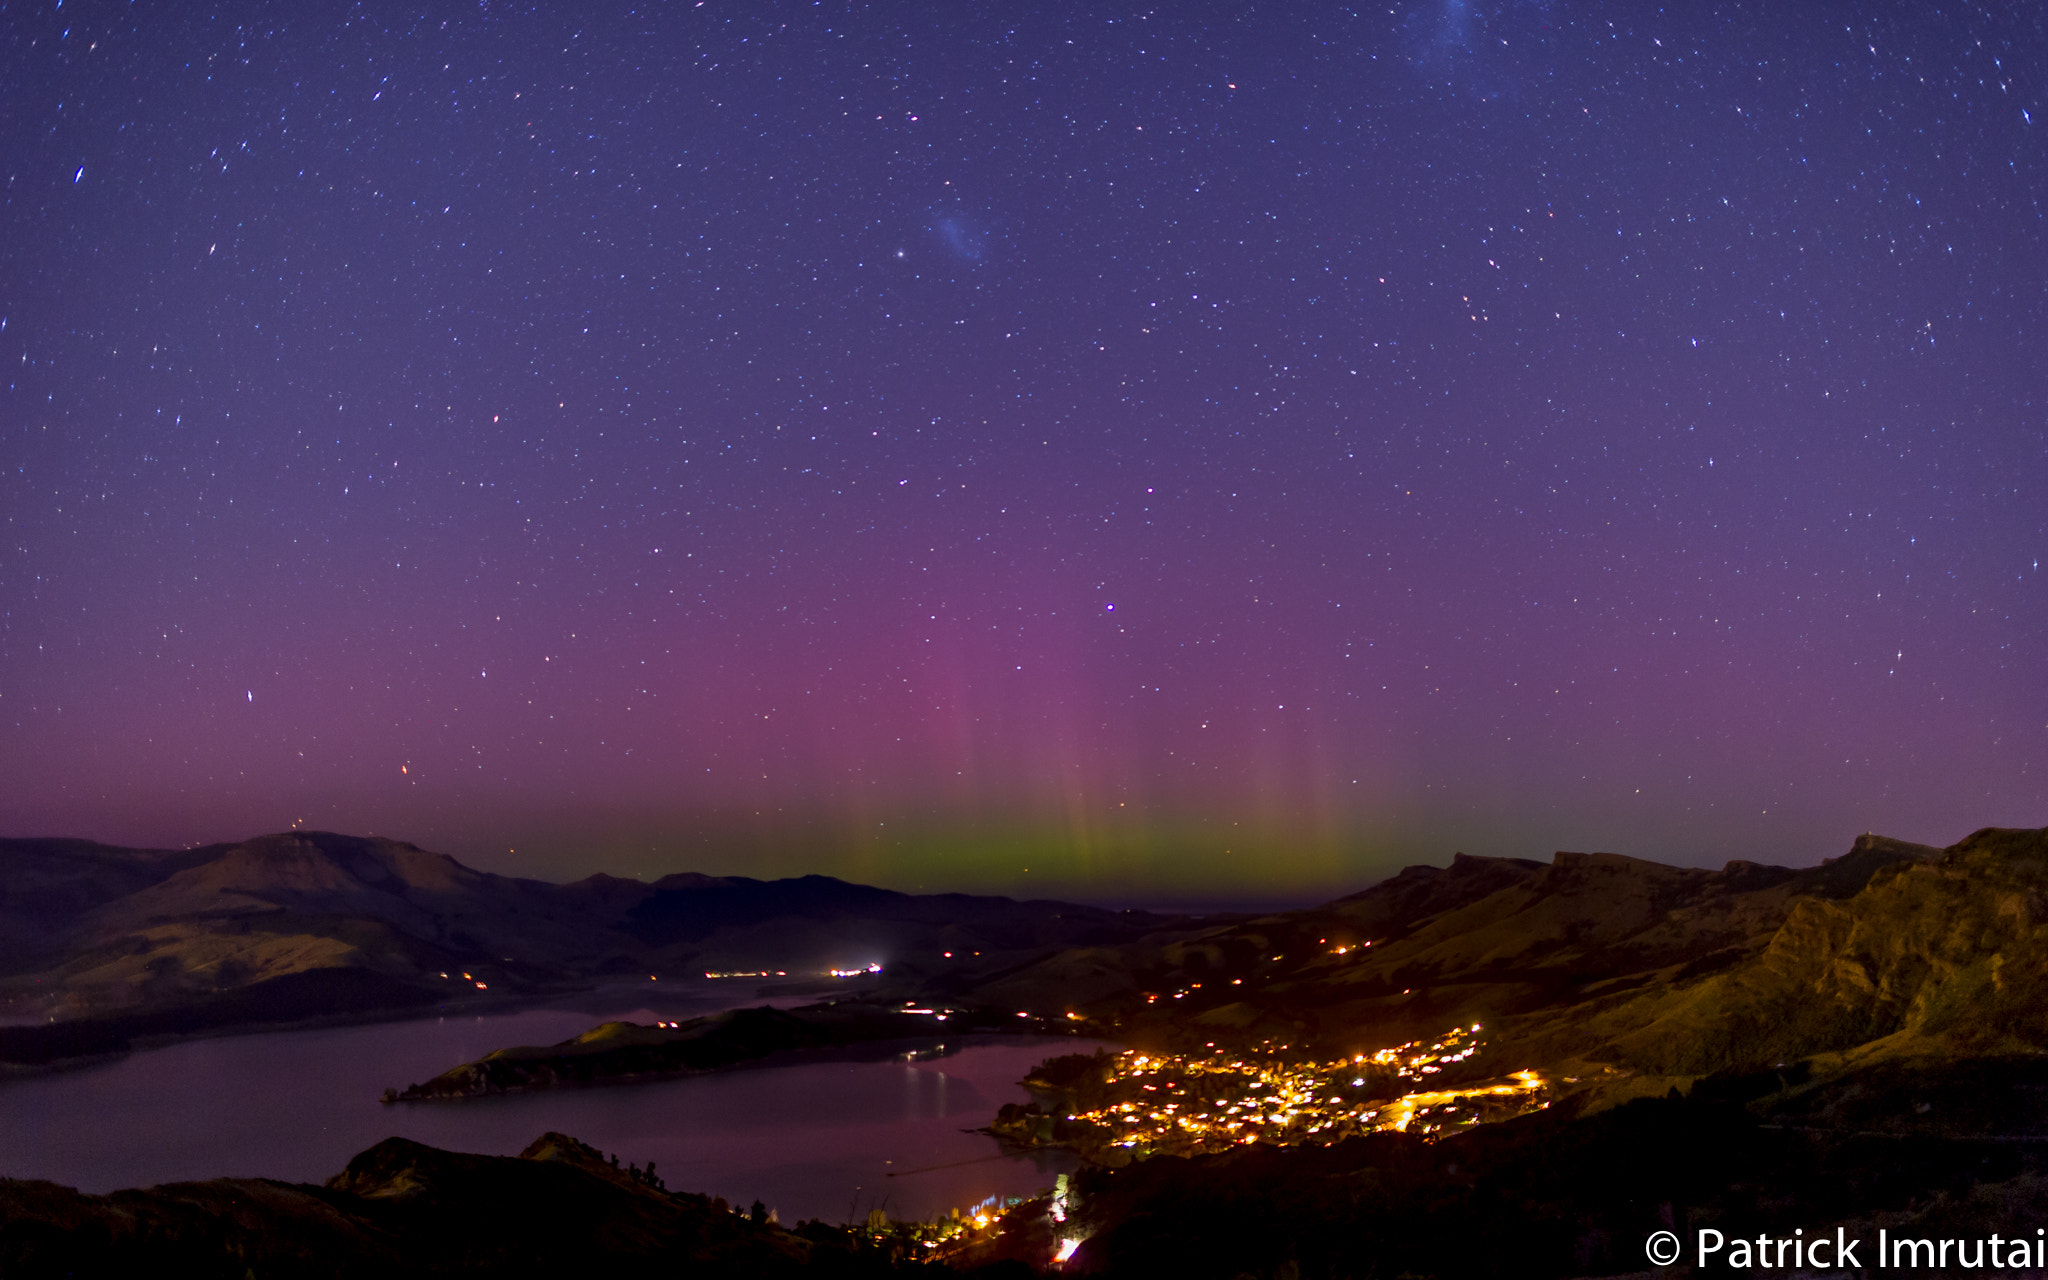 Photograph Aurora australis from New Zealand by Patrick Imrutai on 500px